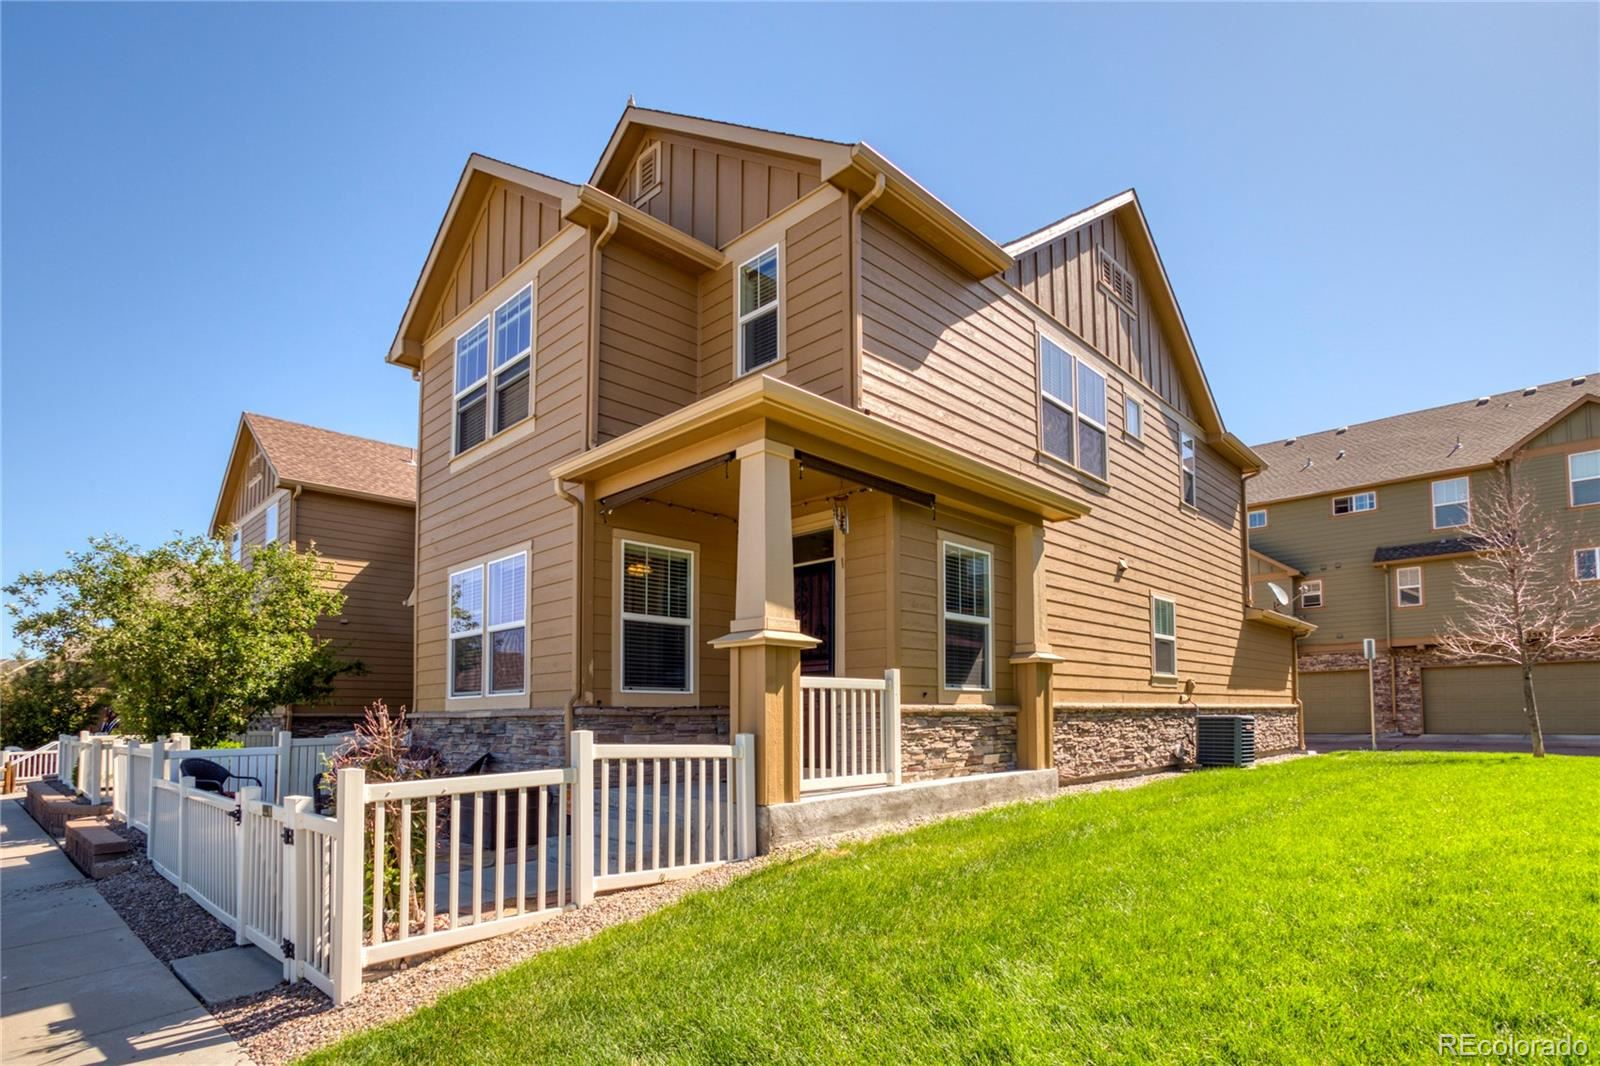 3589 Tranquility Trail, Castle Rock, CO 80109 - #: 2058995